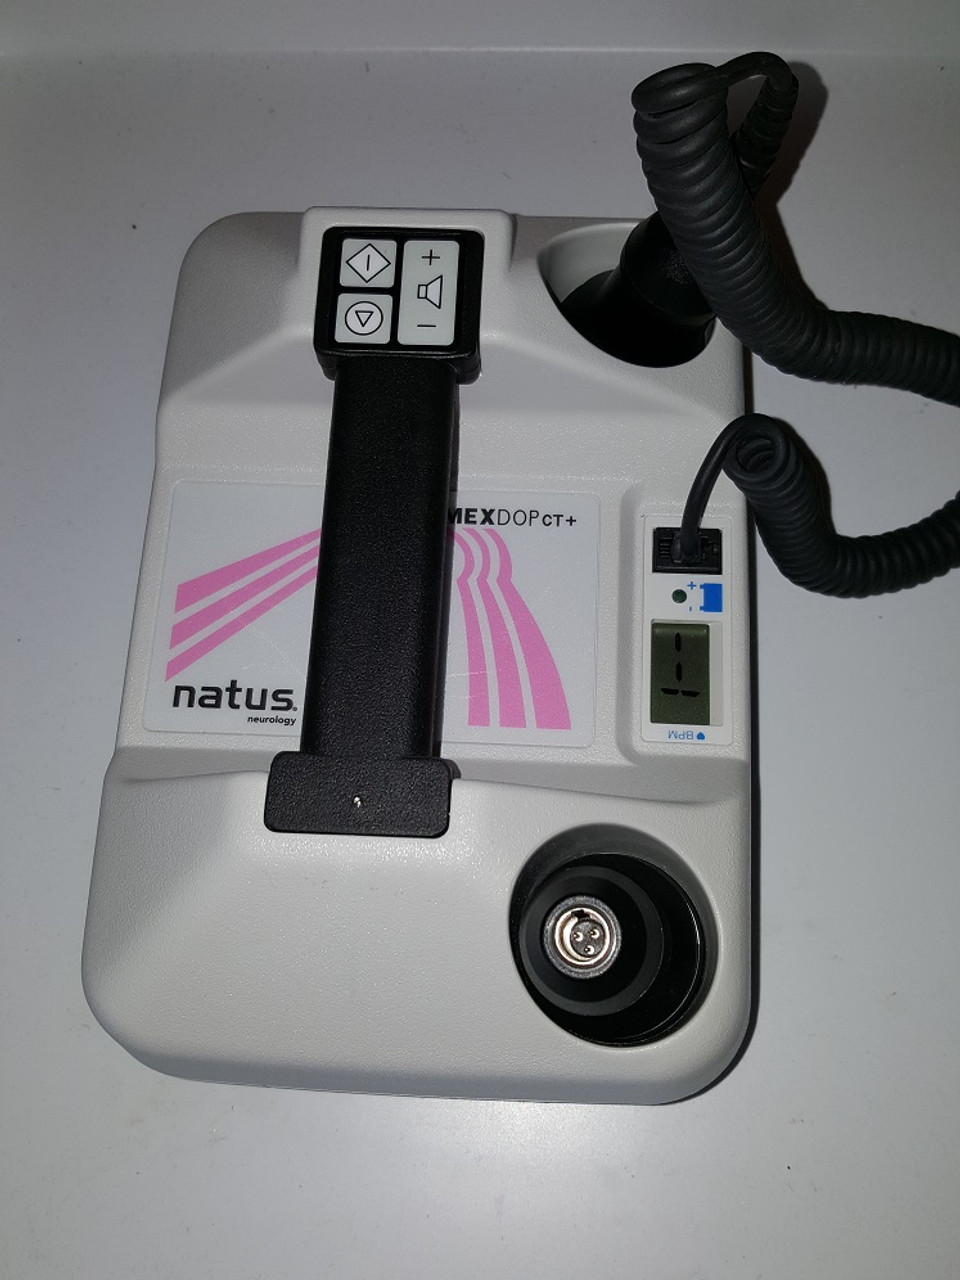 Natus ImexDop CT+ Portable counter top doppler